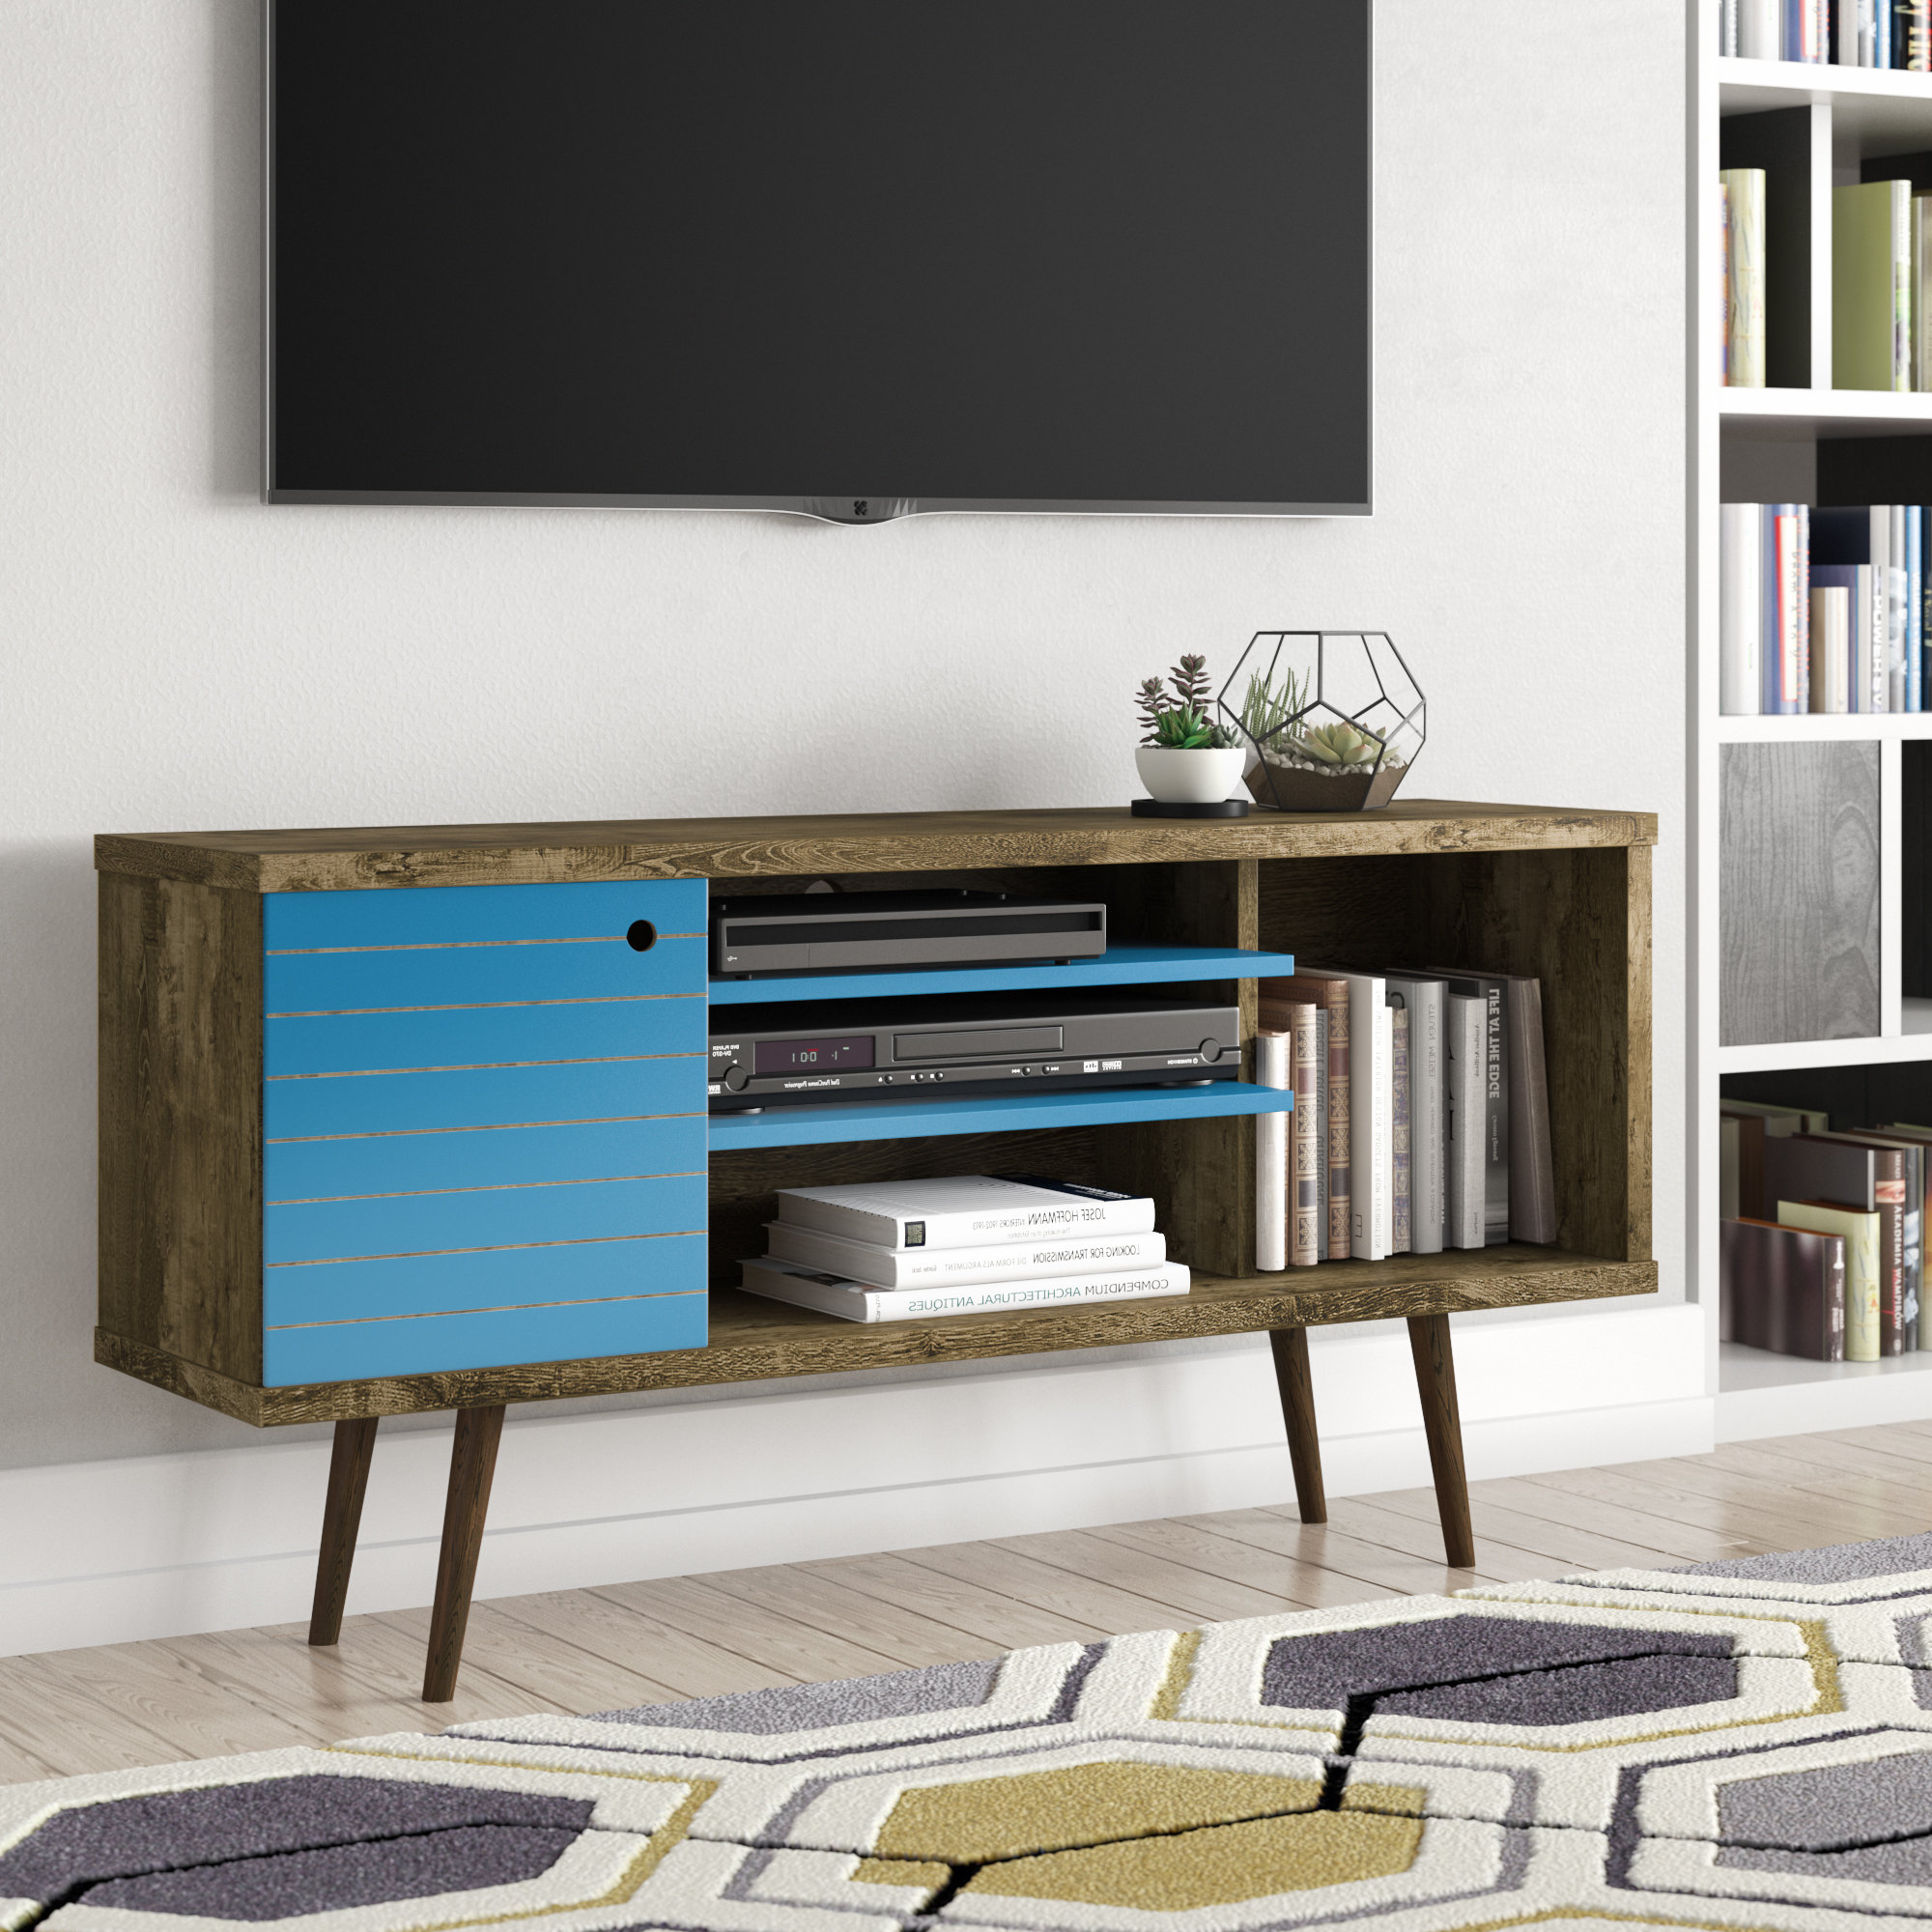 George Oliver Jabari Tv Stand For Tvs Up To 50'' & Reviews | Wayfair With Regard To Century Blue 60 Inch Tv Stands (View 7 of 20)